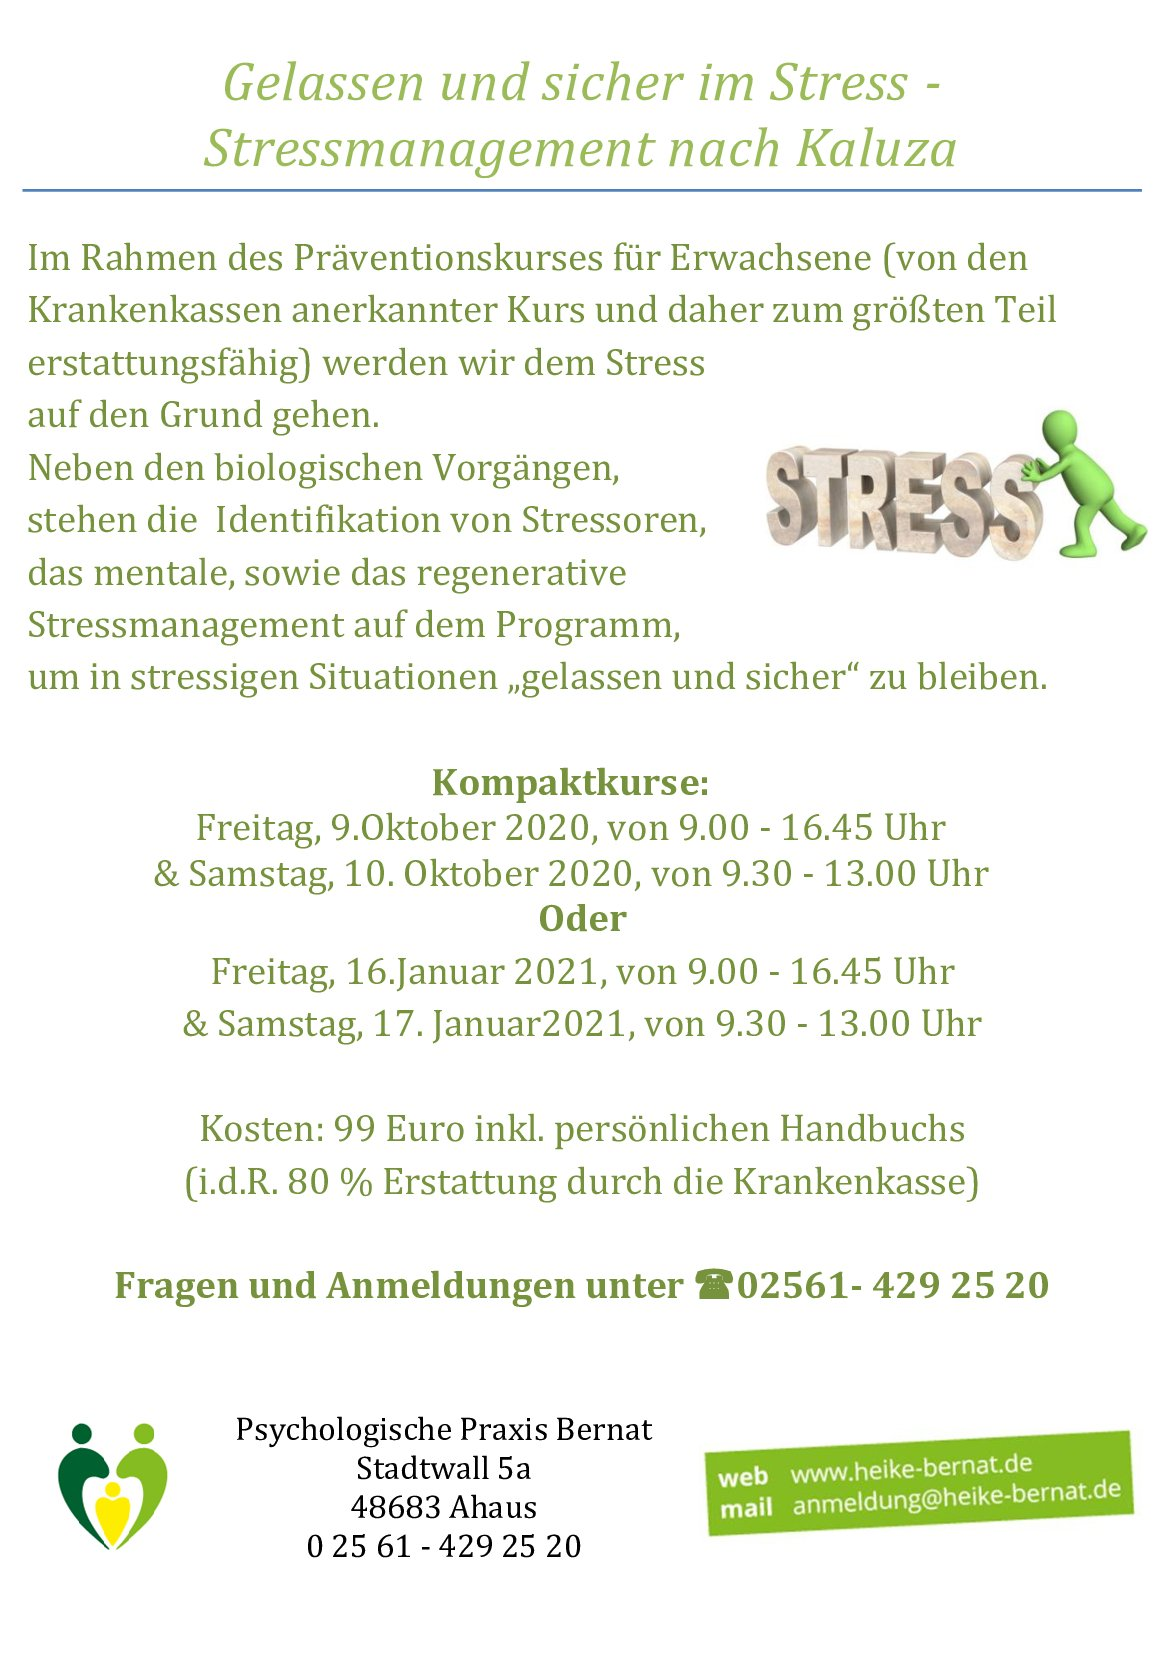 Flyer-Stressmanagement_Oktober_2020_Januar_2021 (1)